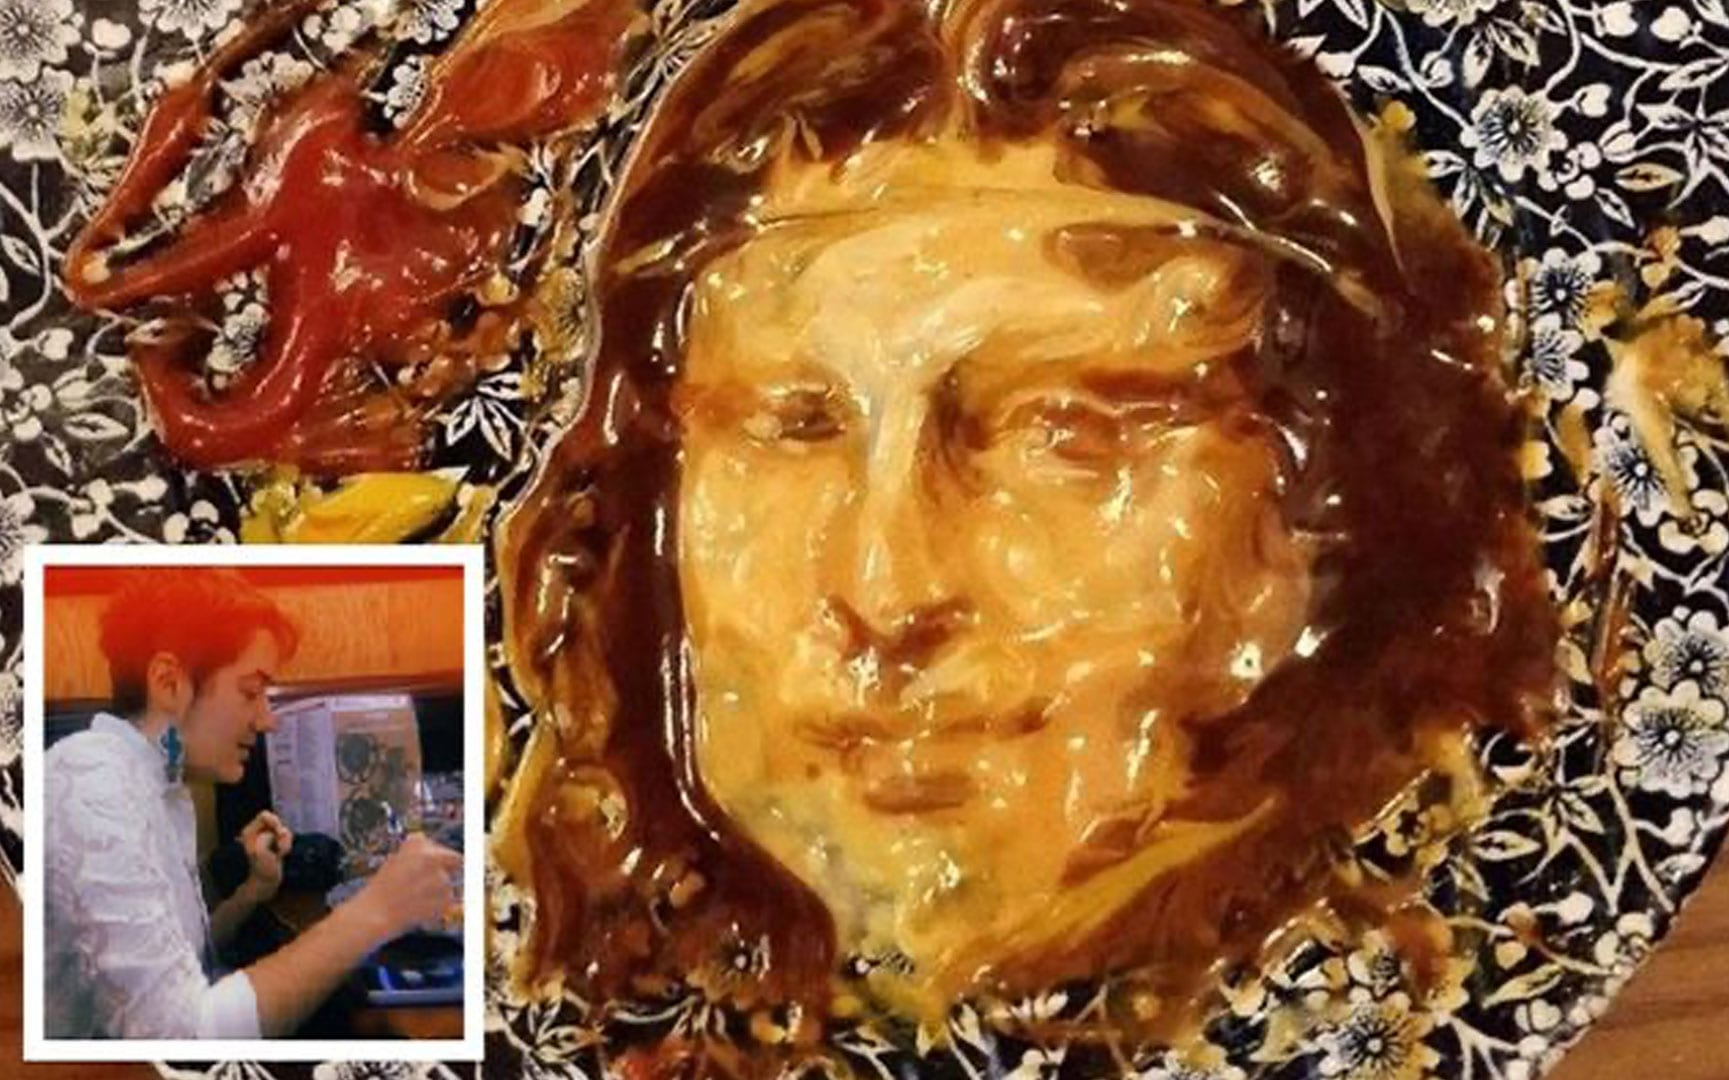 Molly's sauce Mona Lisa